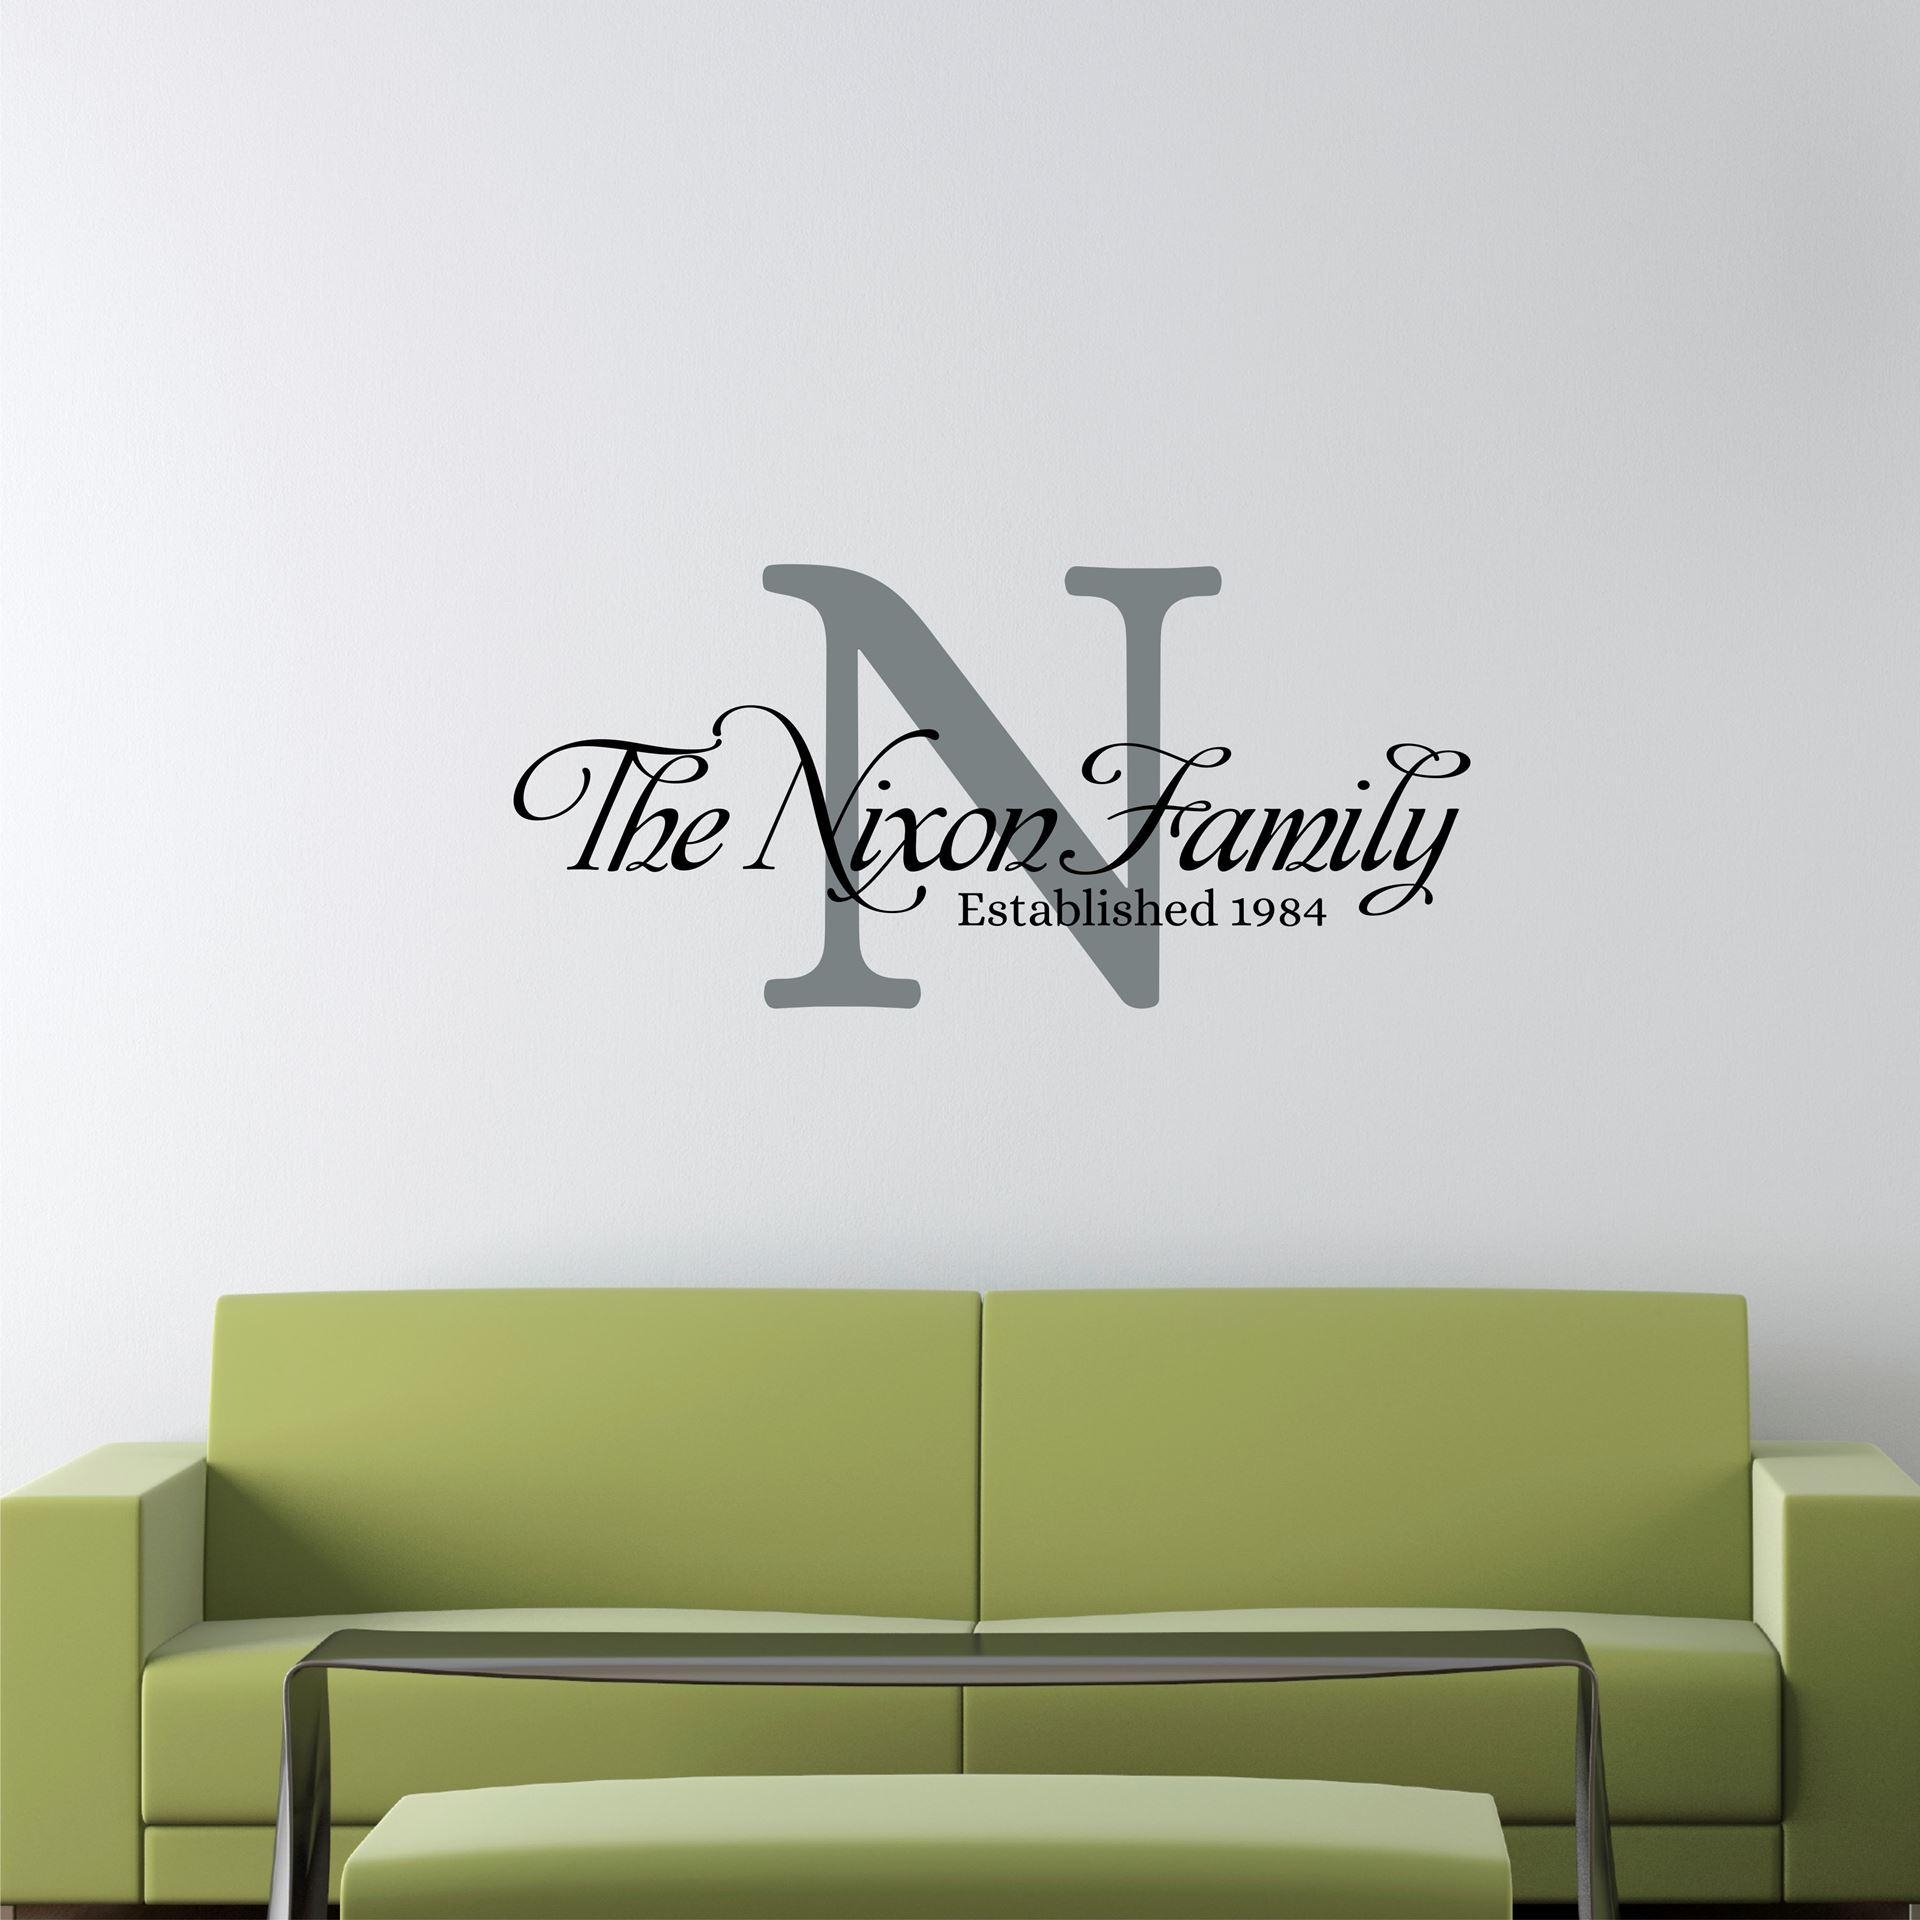 Amusing 25+ Personalized Last Name Wall Art Design Decoration Of Regarding Last Name Wall Art (View 18 of 20)